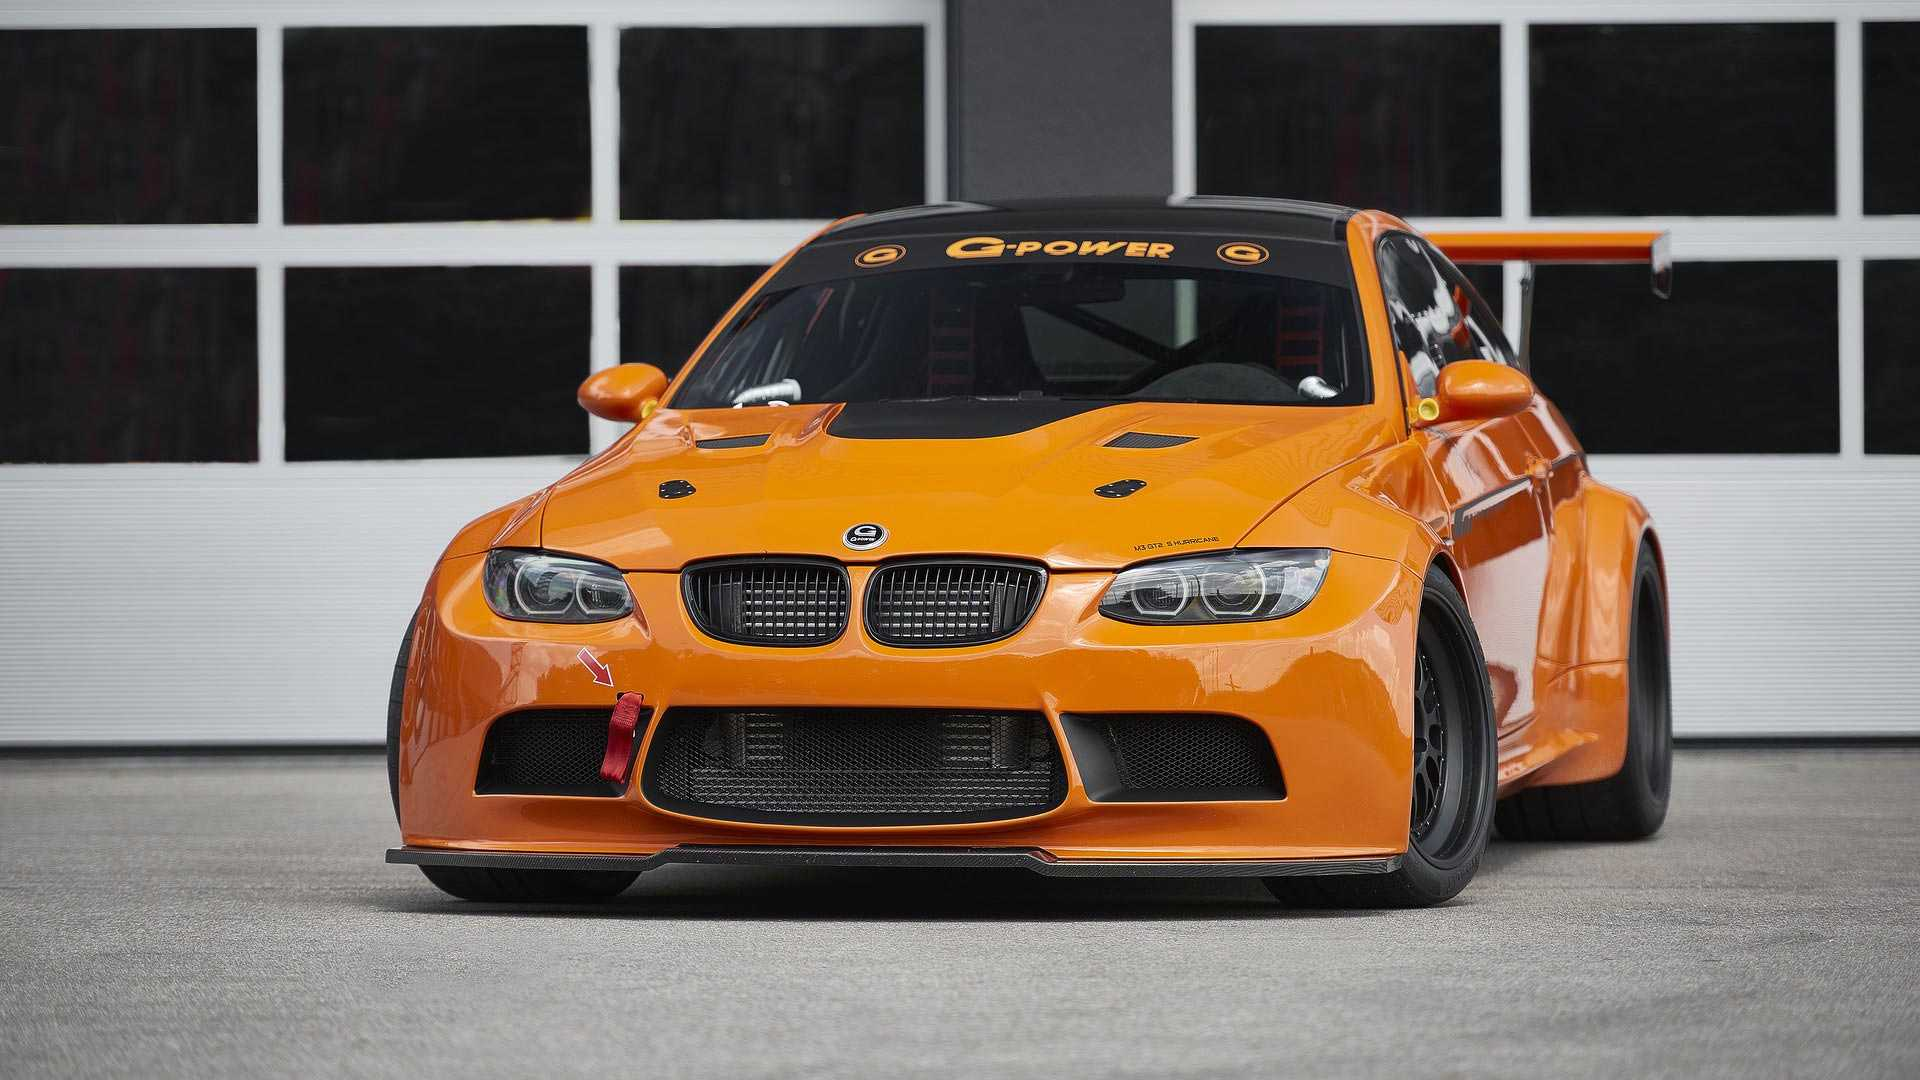 Widebody Bmw M3 With Supercharged 4 5 Liter V8 Packs 709 Hp